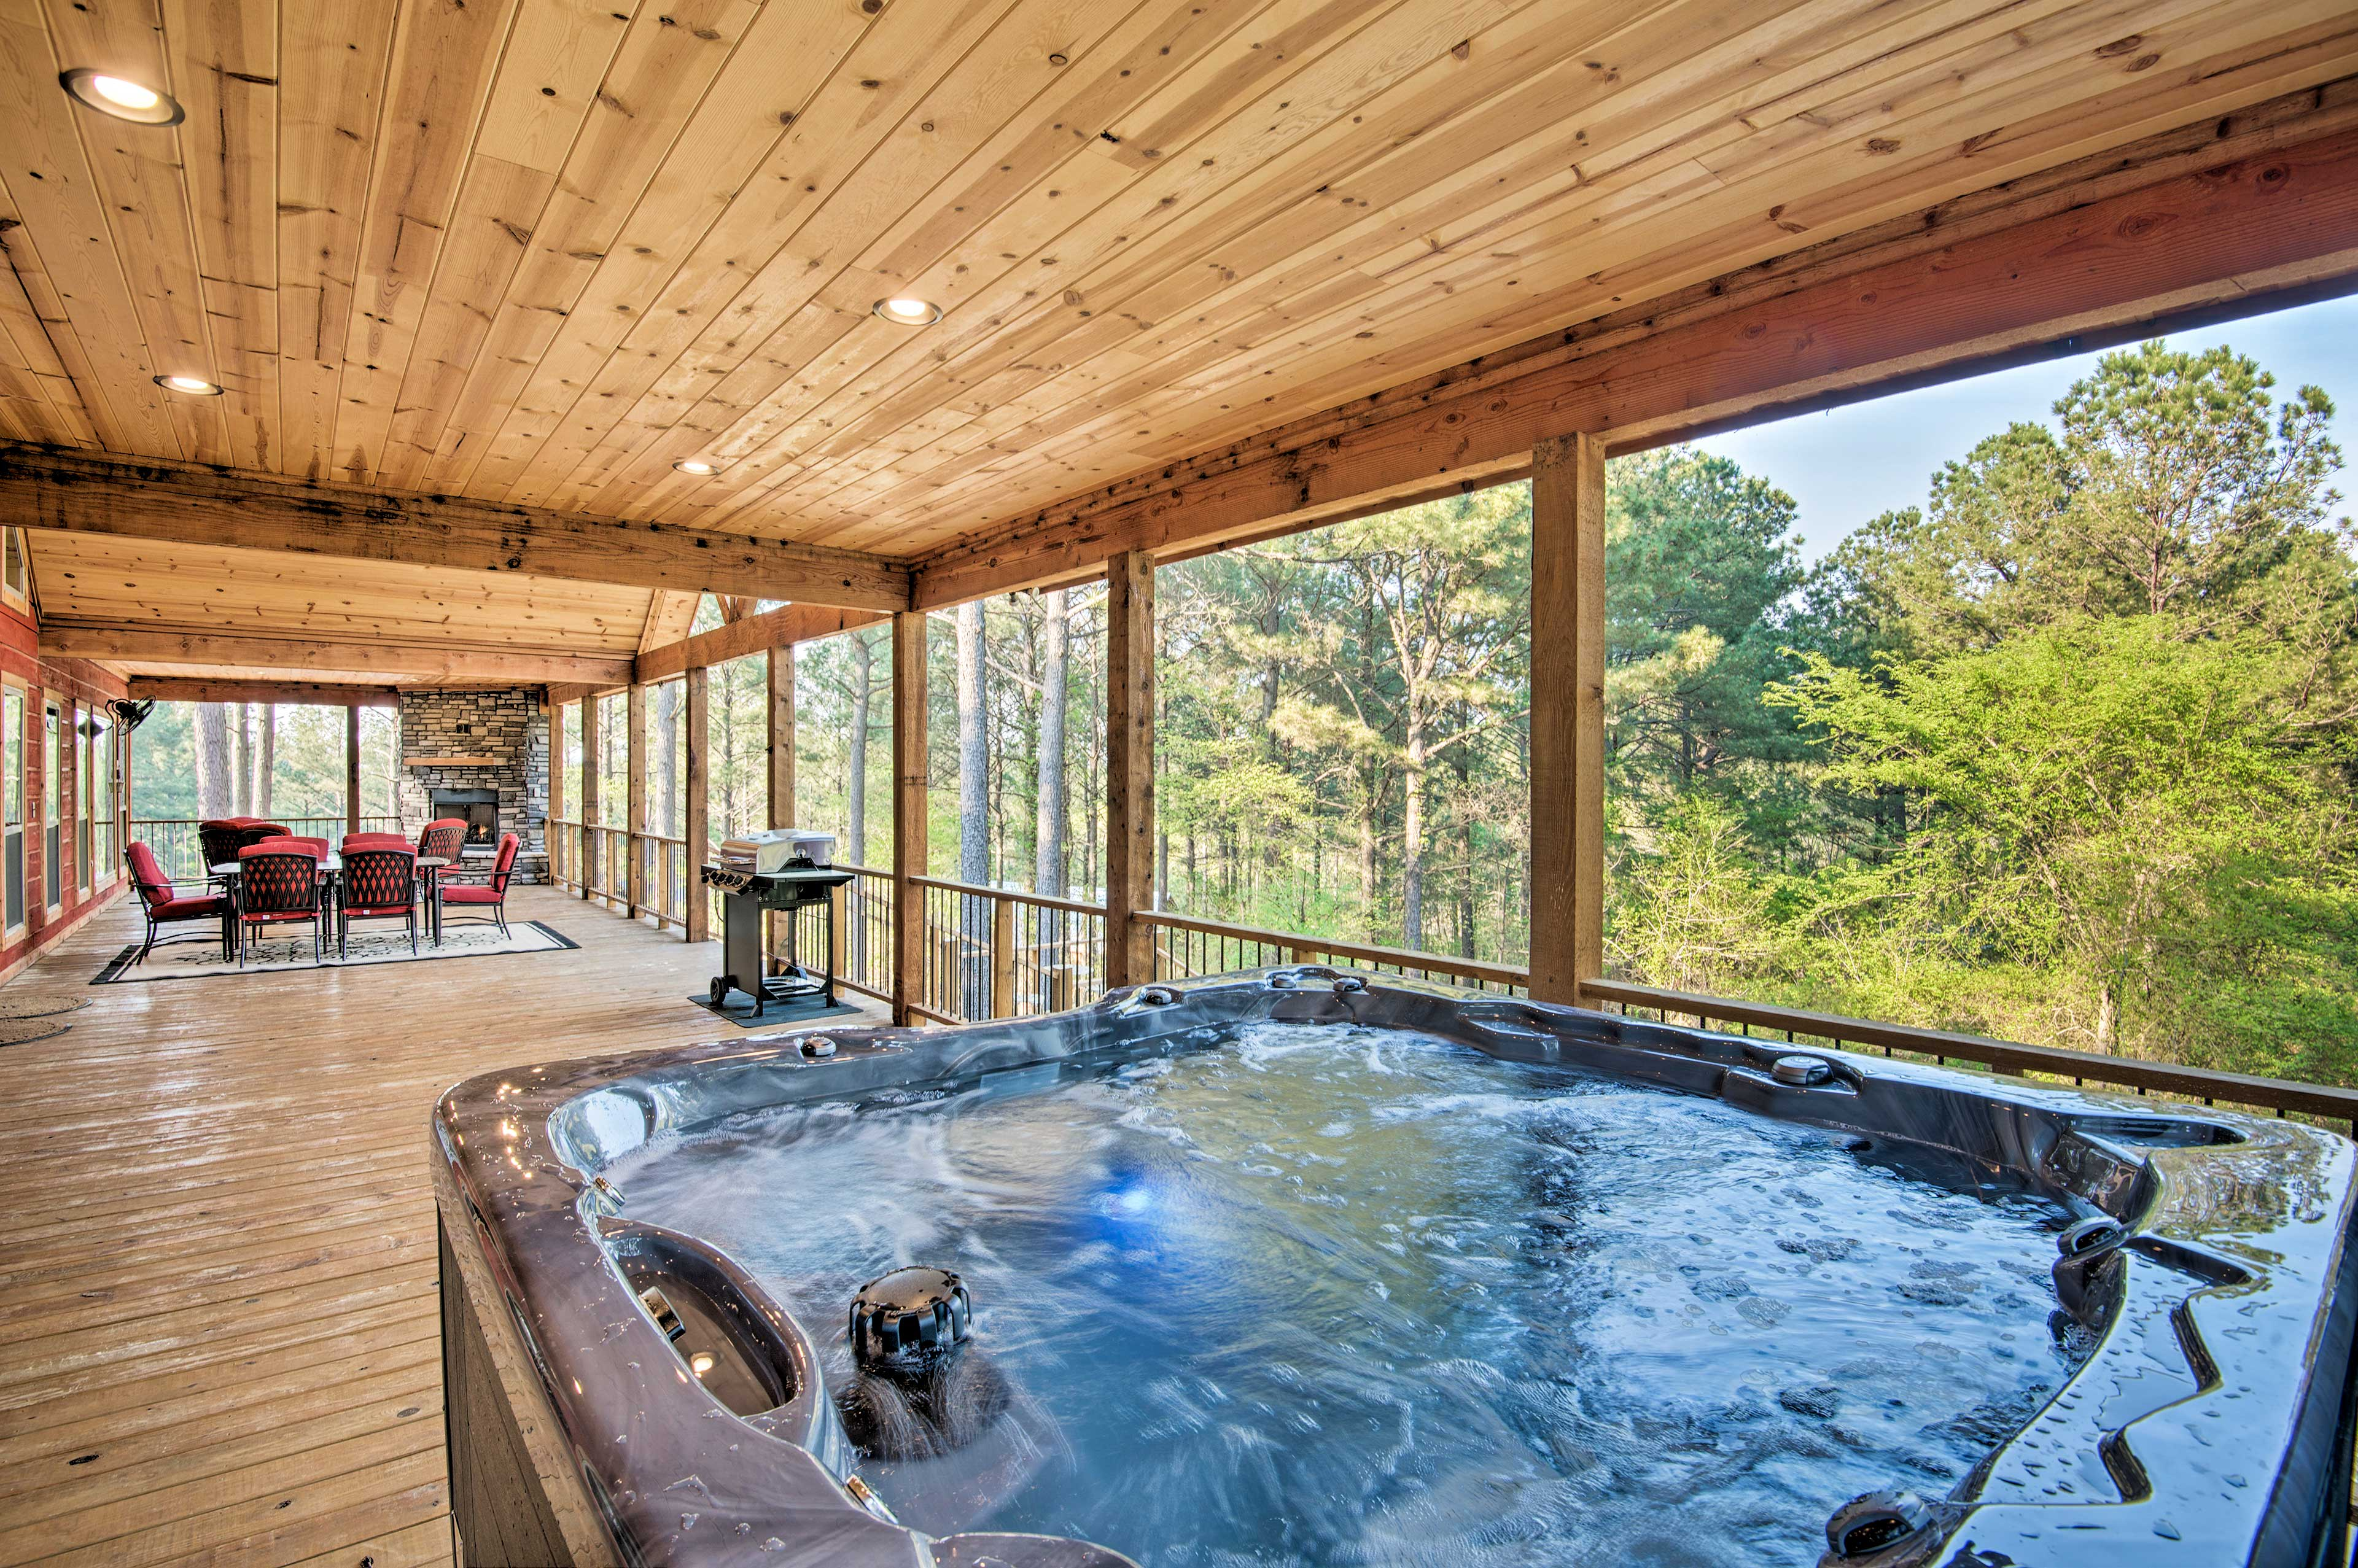 The vacation rental boasts a superb, secluded location 10 minutes to the lake.